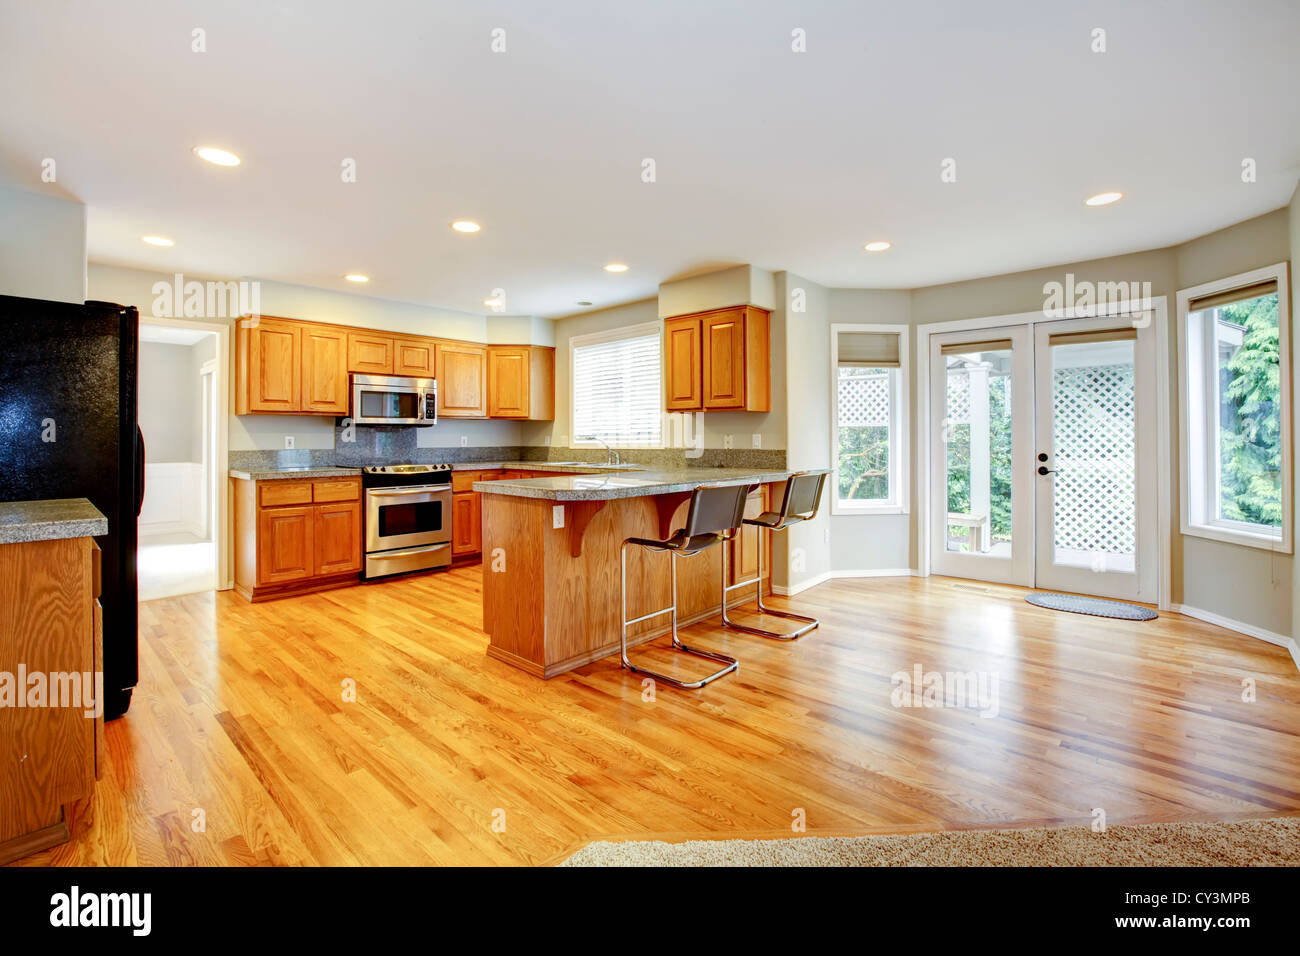 large empty open kitchen with living room with balcony doors and